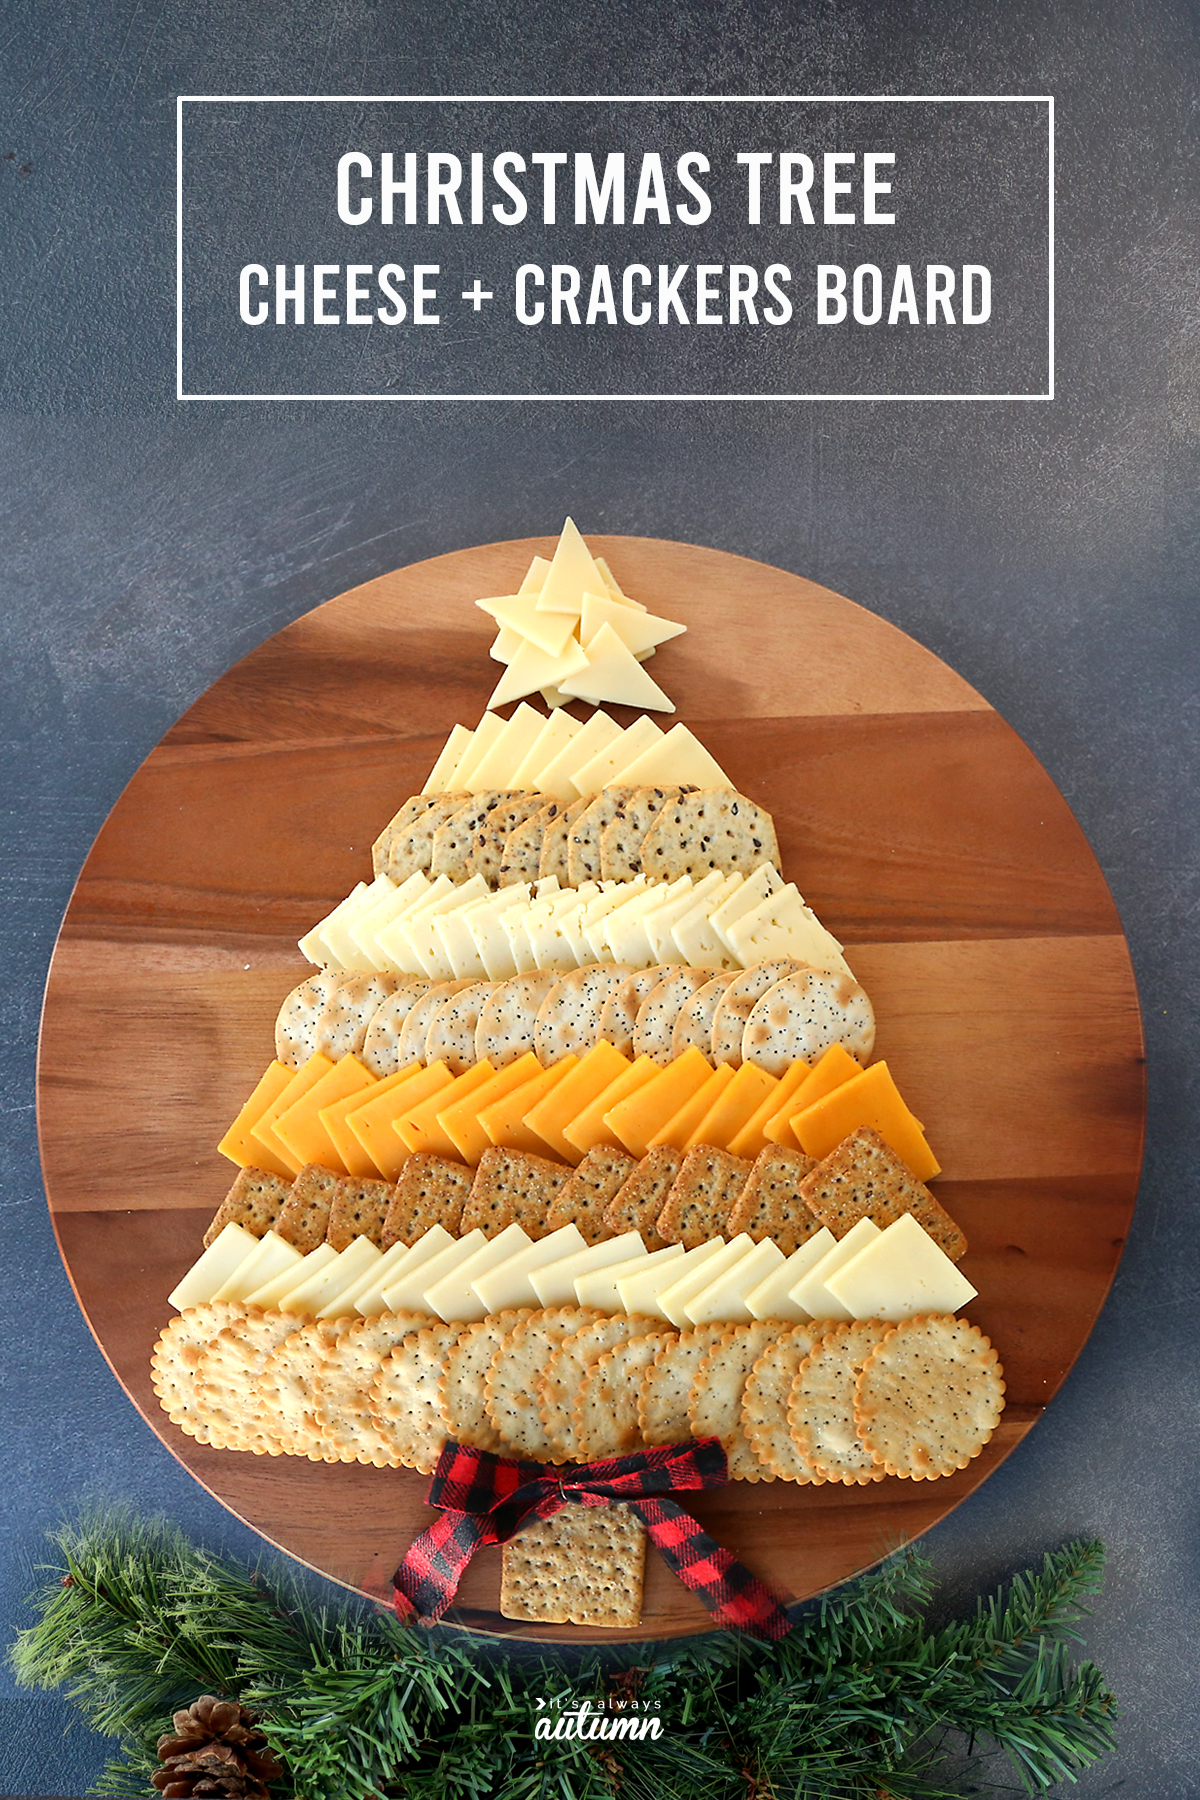 Cheese and crackers in the shape of a Christmas tree on a wood tray